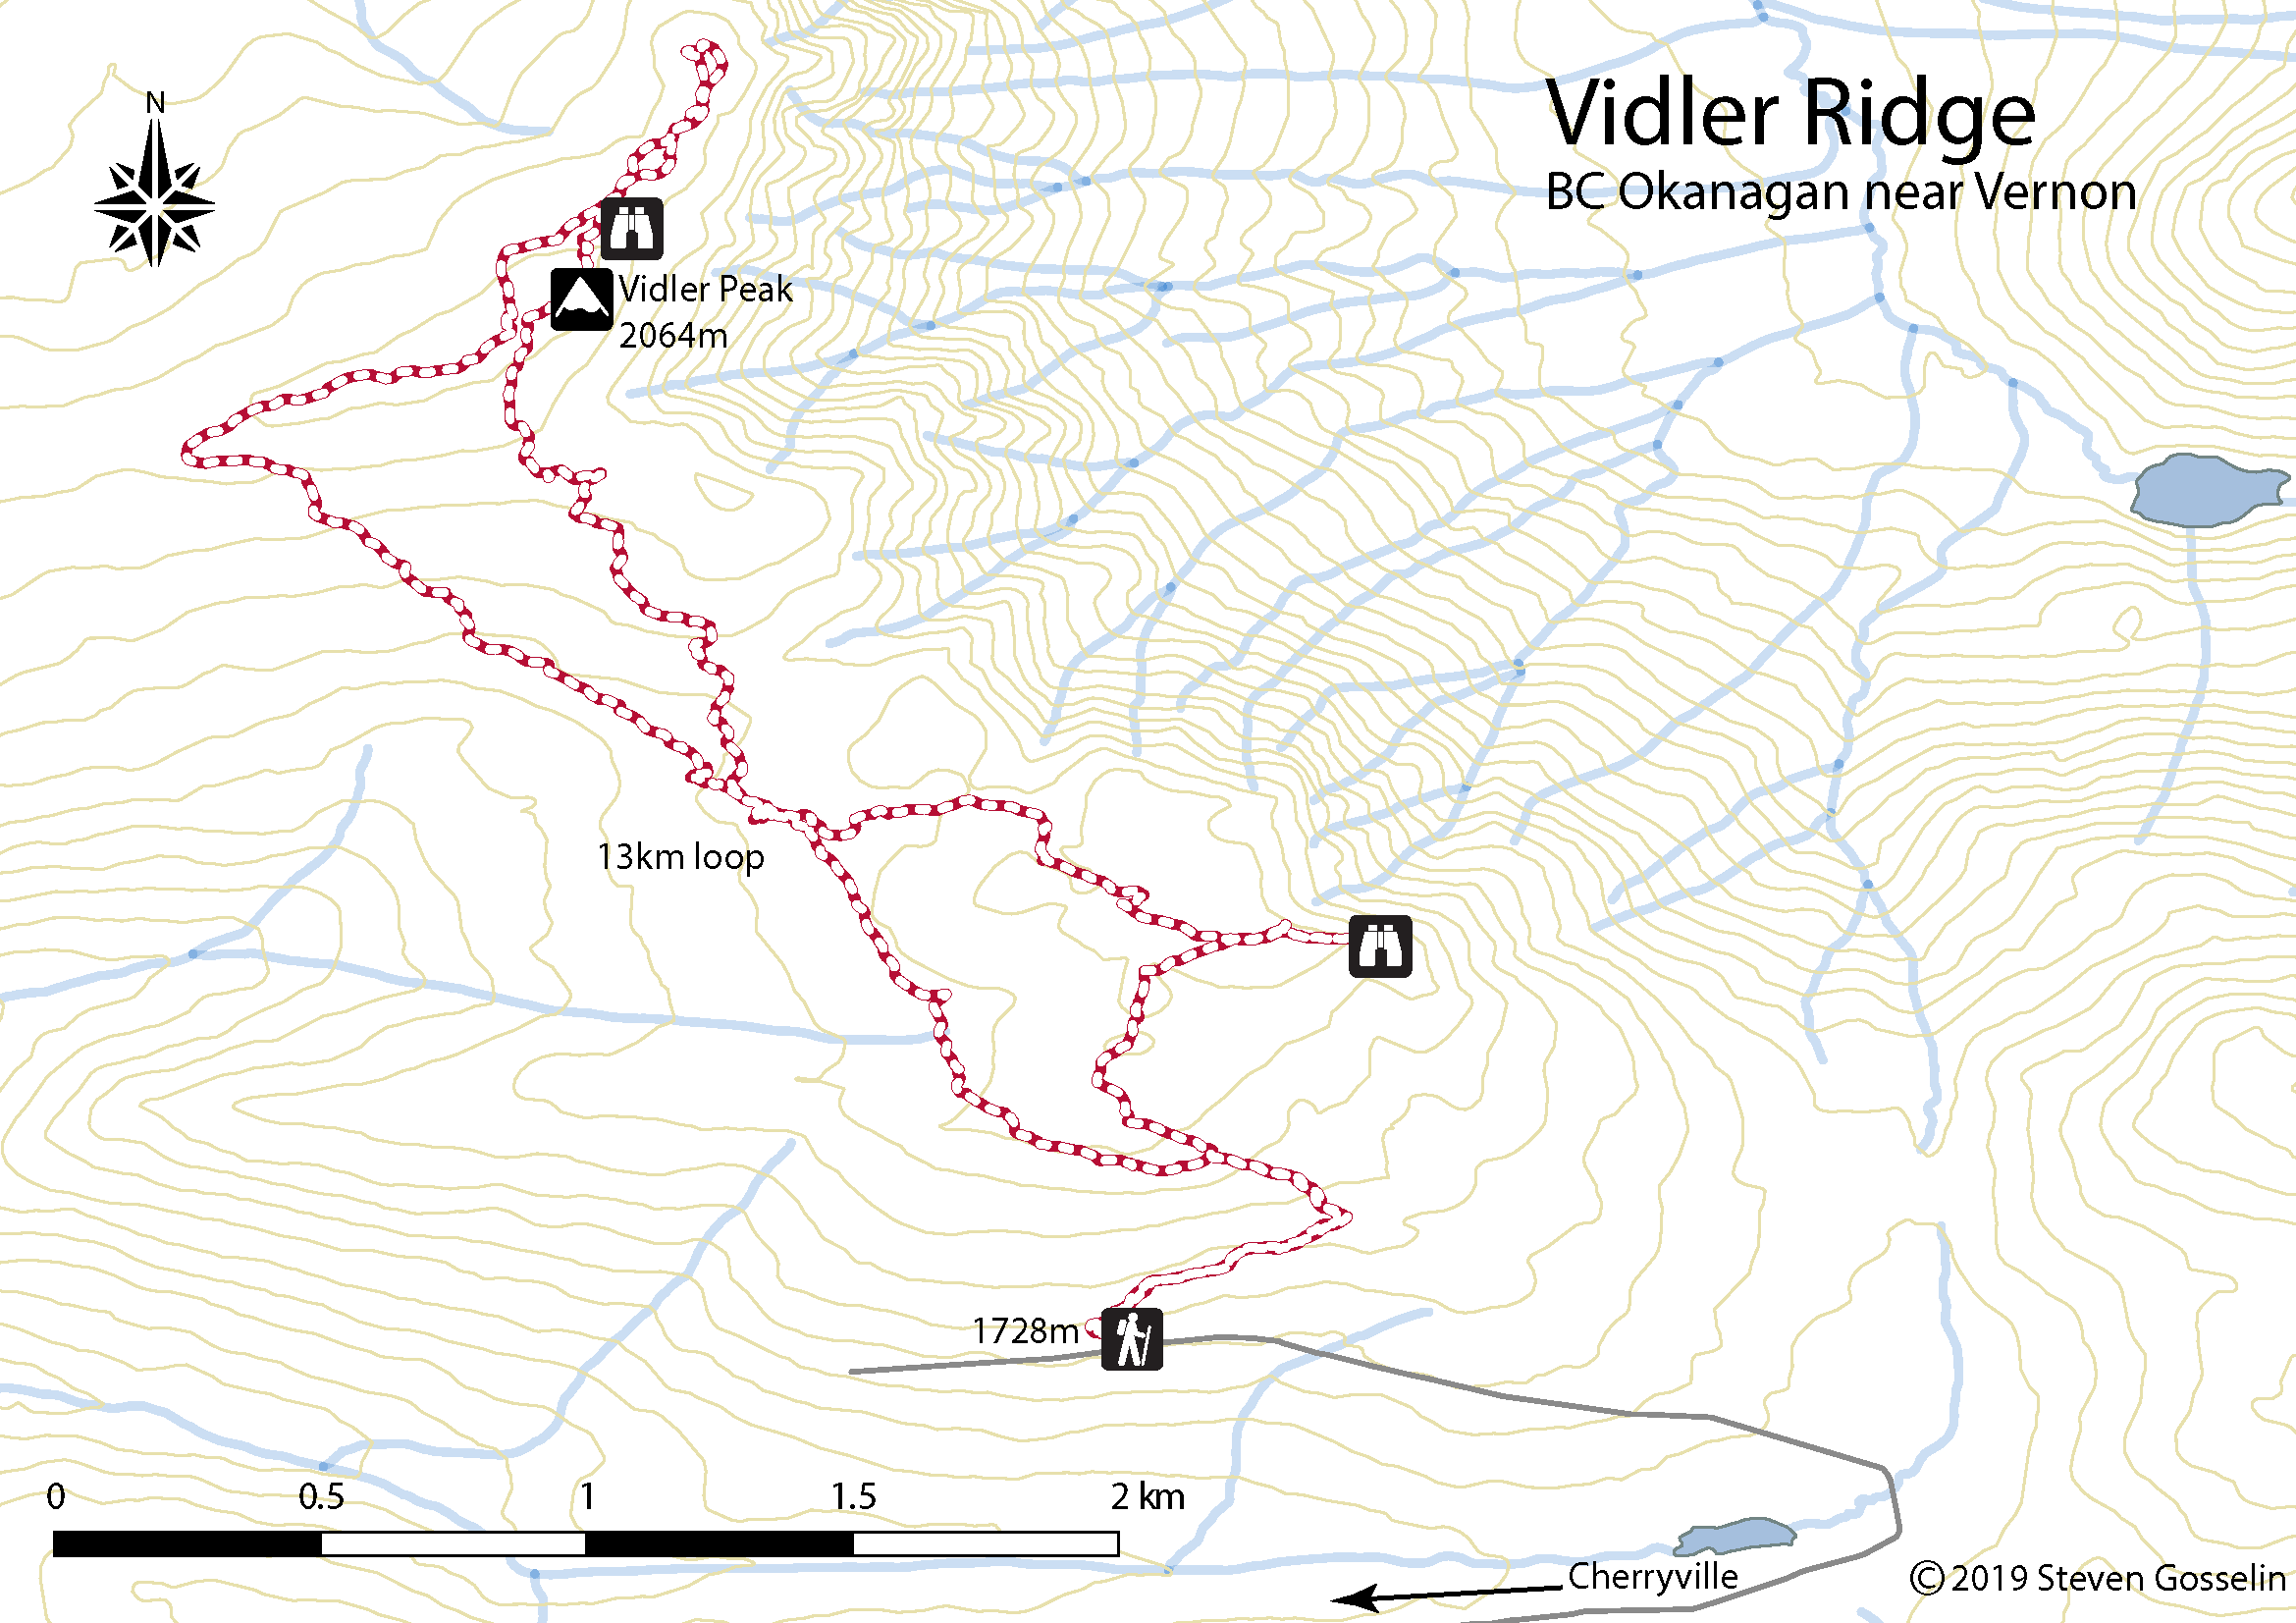 Vidler Ridge Hiking Route